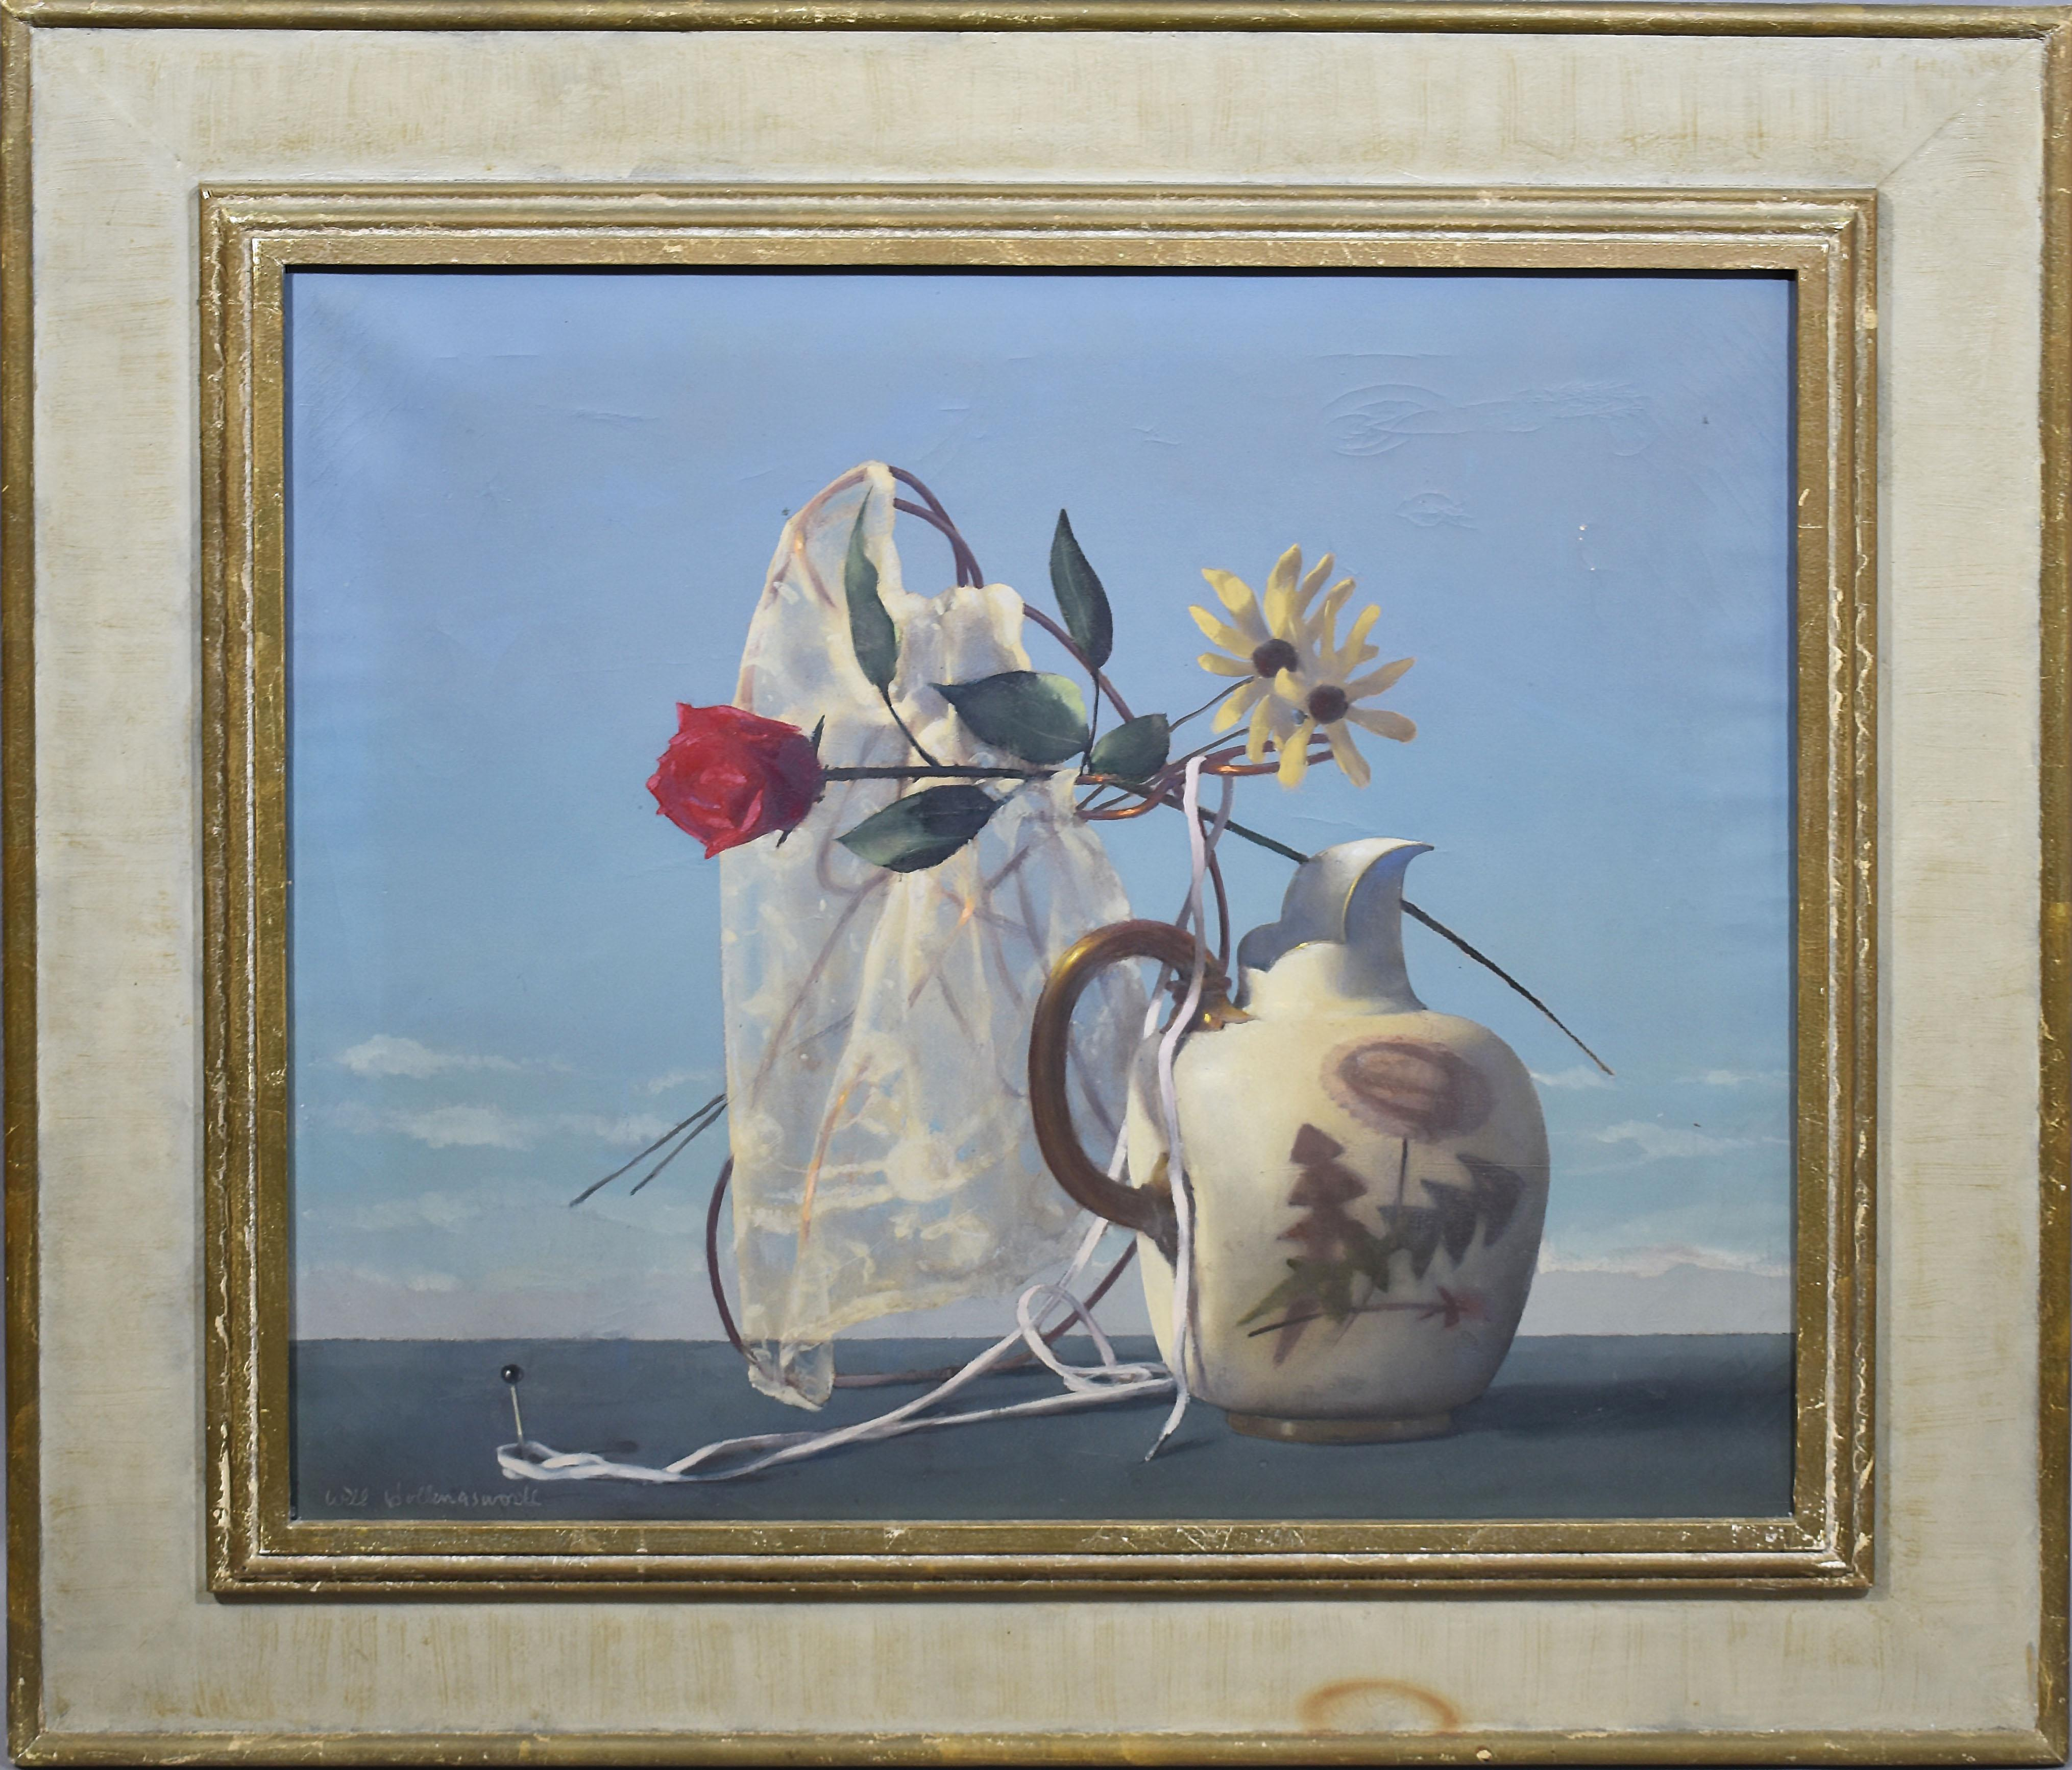 Antique American 1940s Surreal Landscape and Flower Still Life Oil Painting